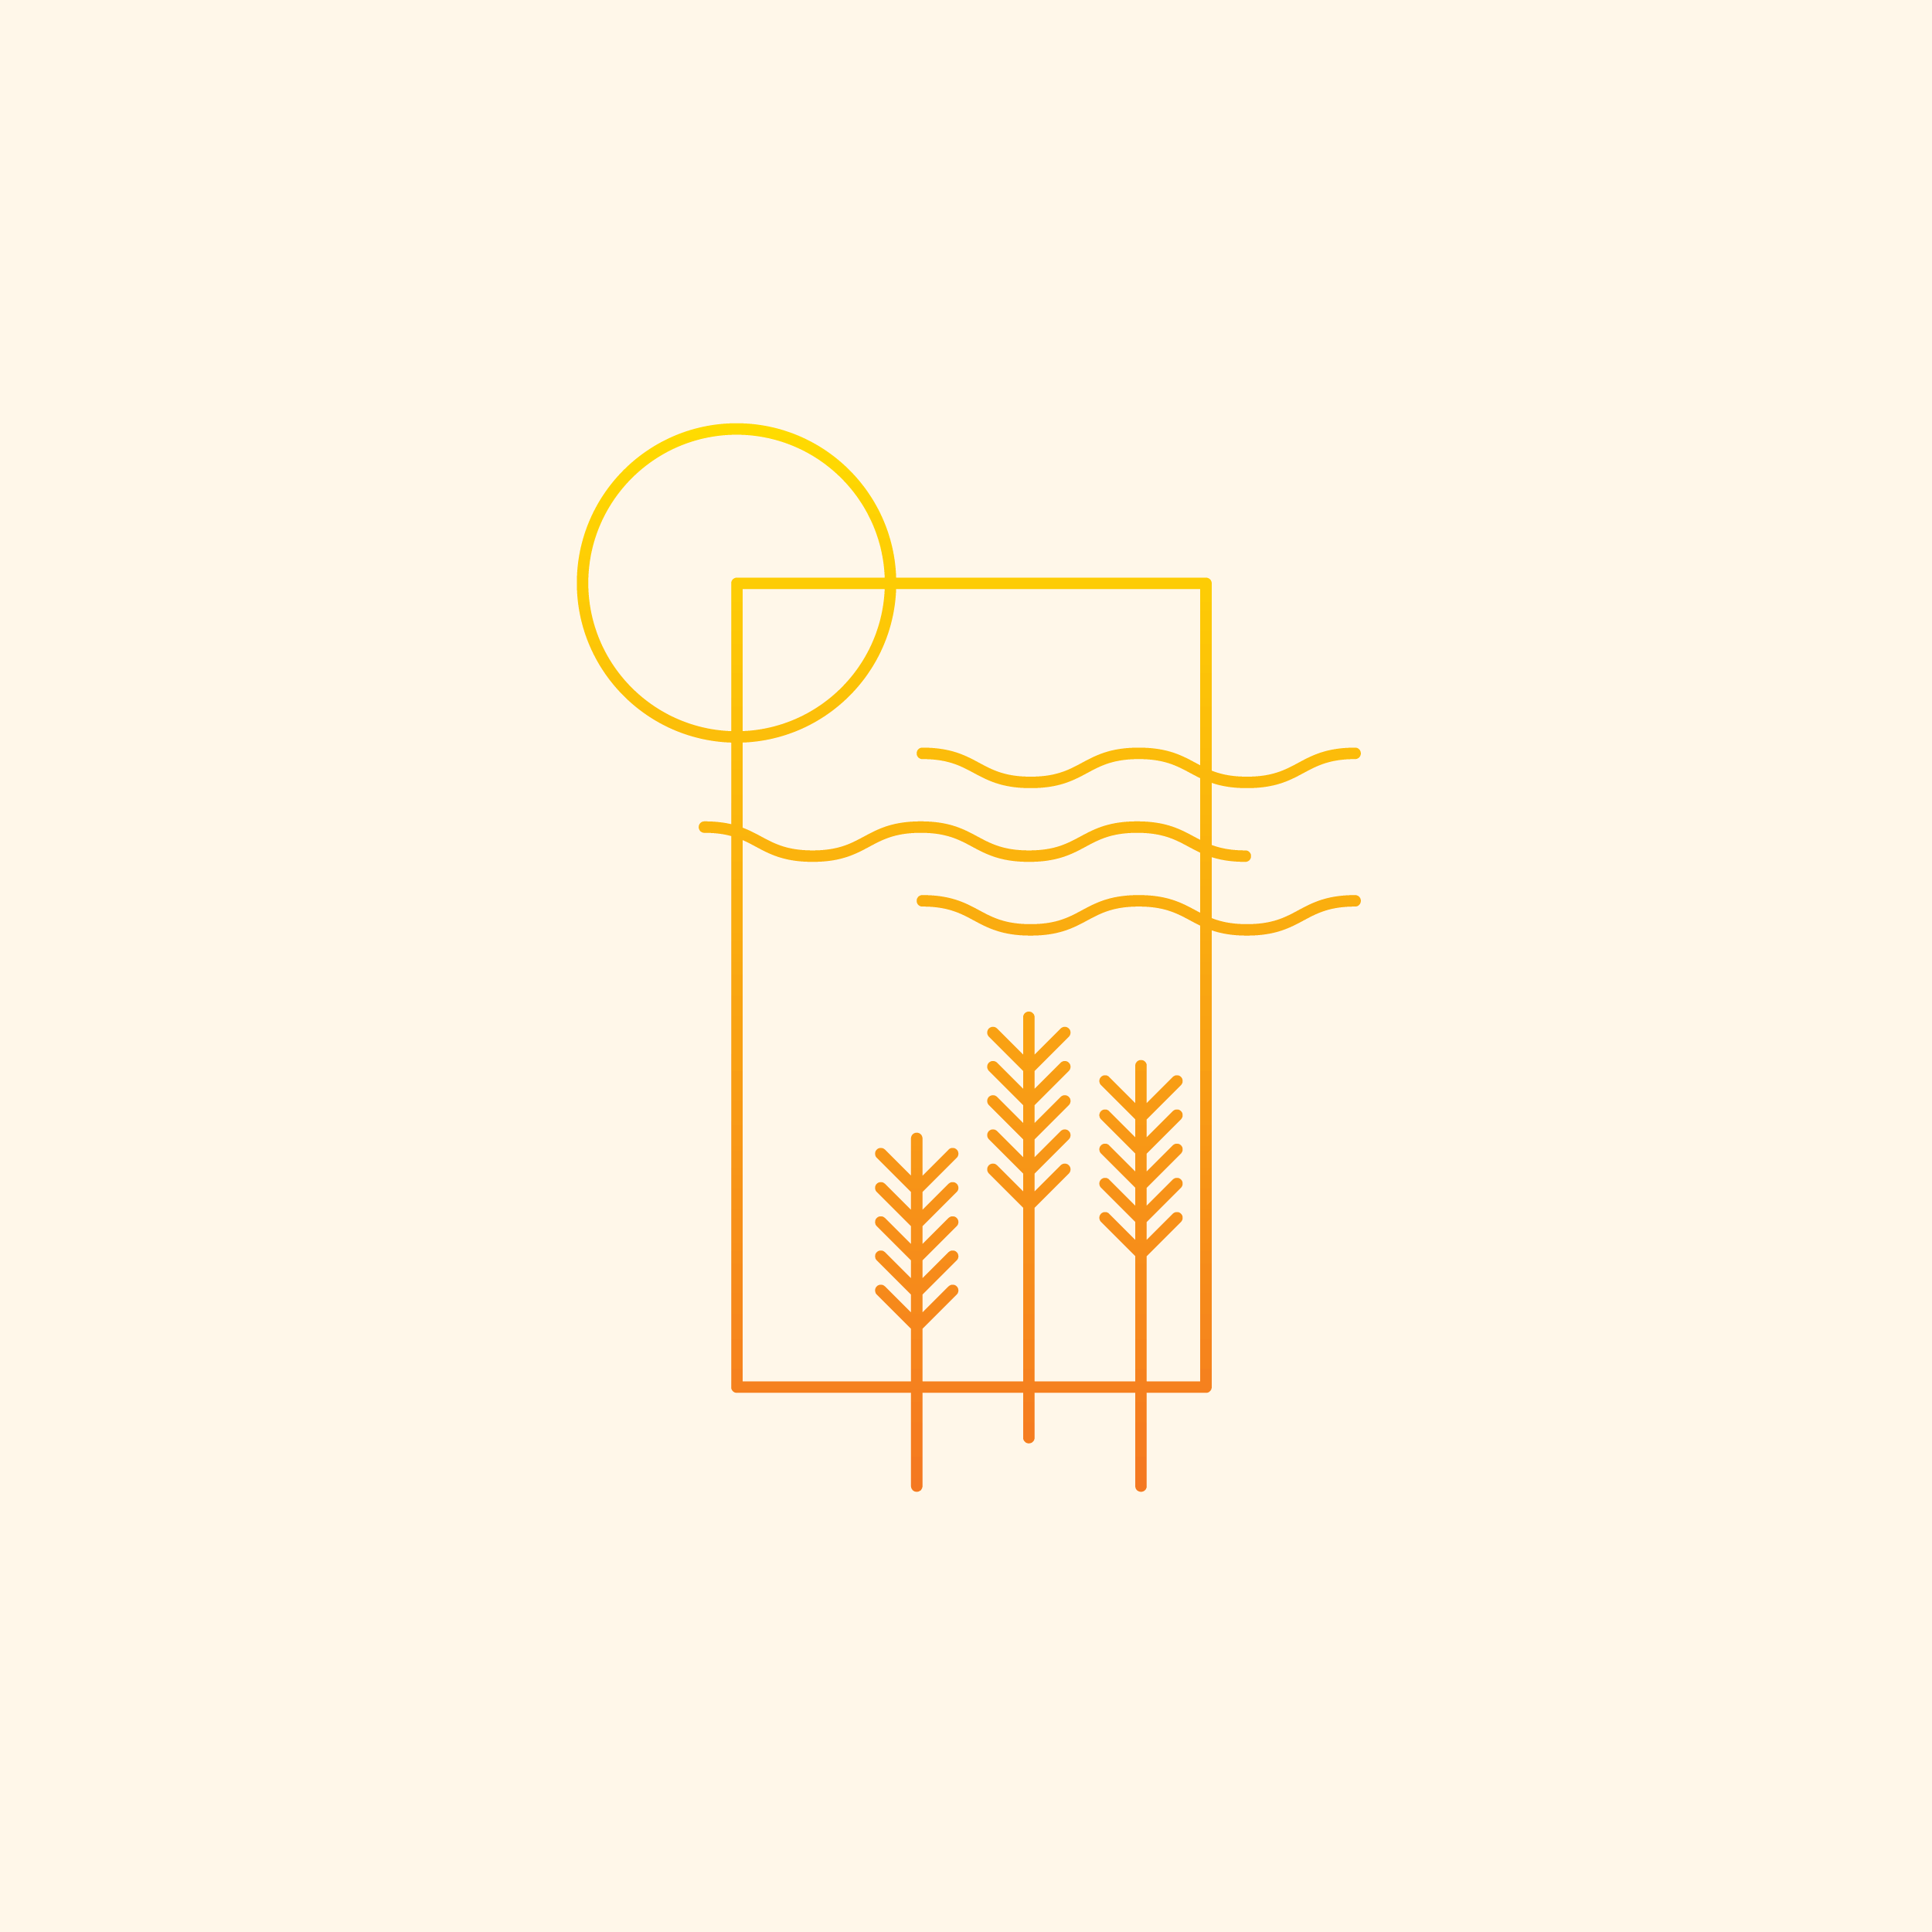 069-agriculture-69